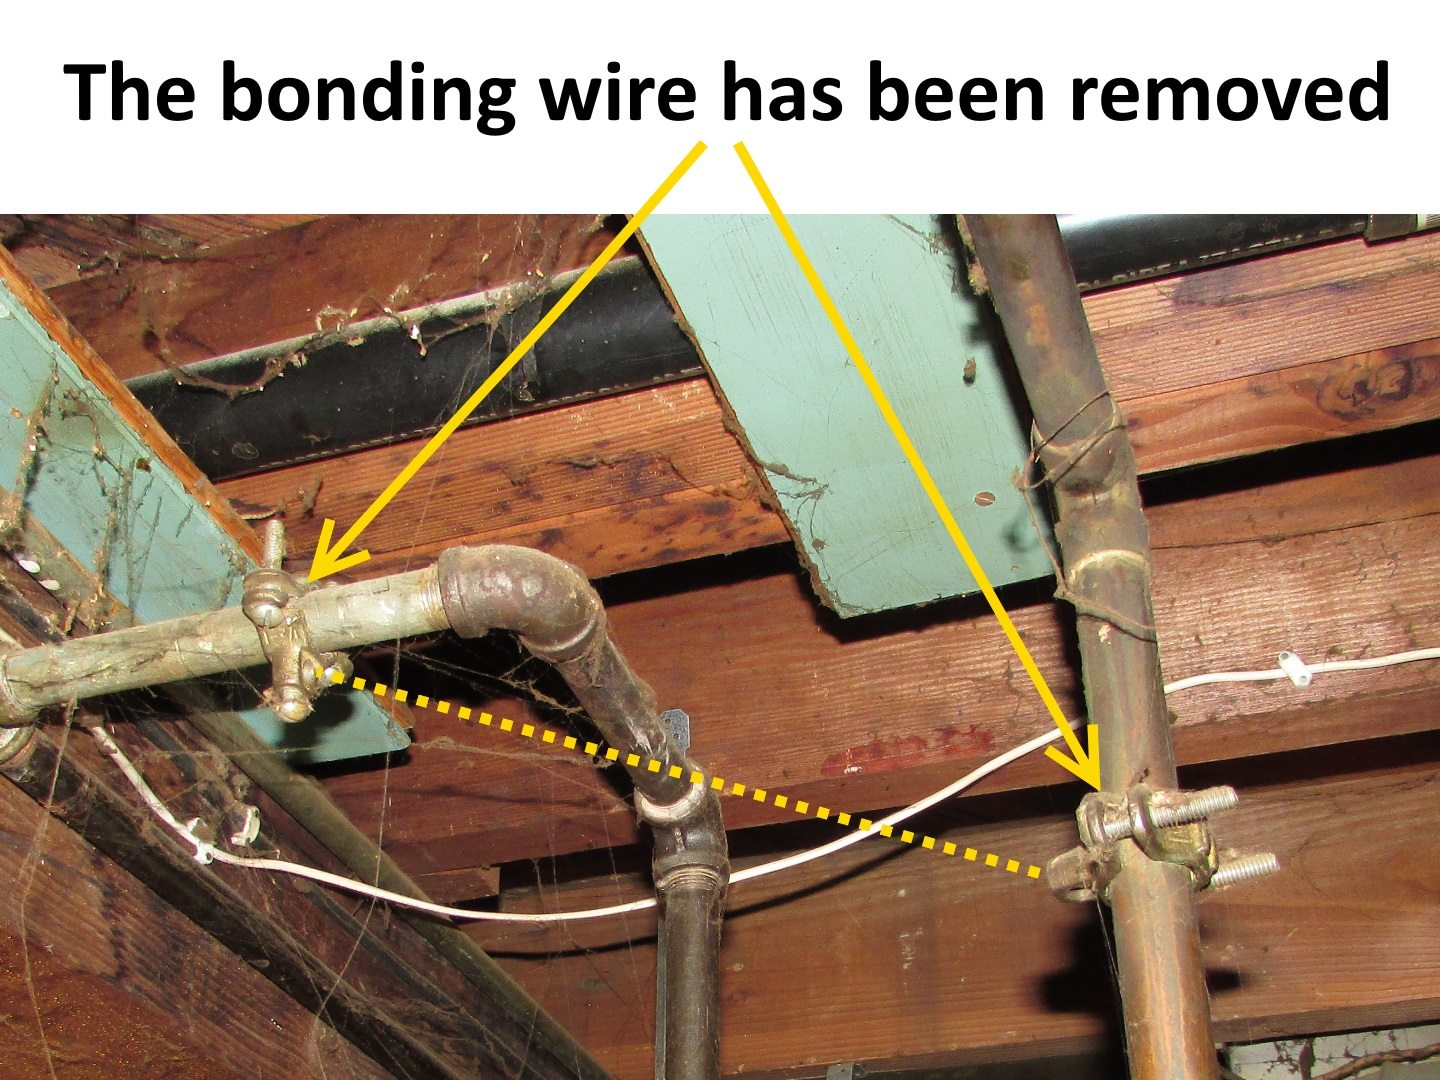 hight resolution of so you get what we had here last week i have pictured below there used to be a bonding wire connected to those clamps but someone removed it